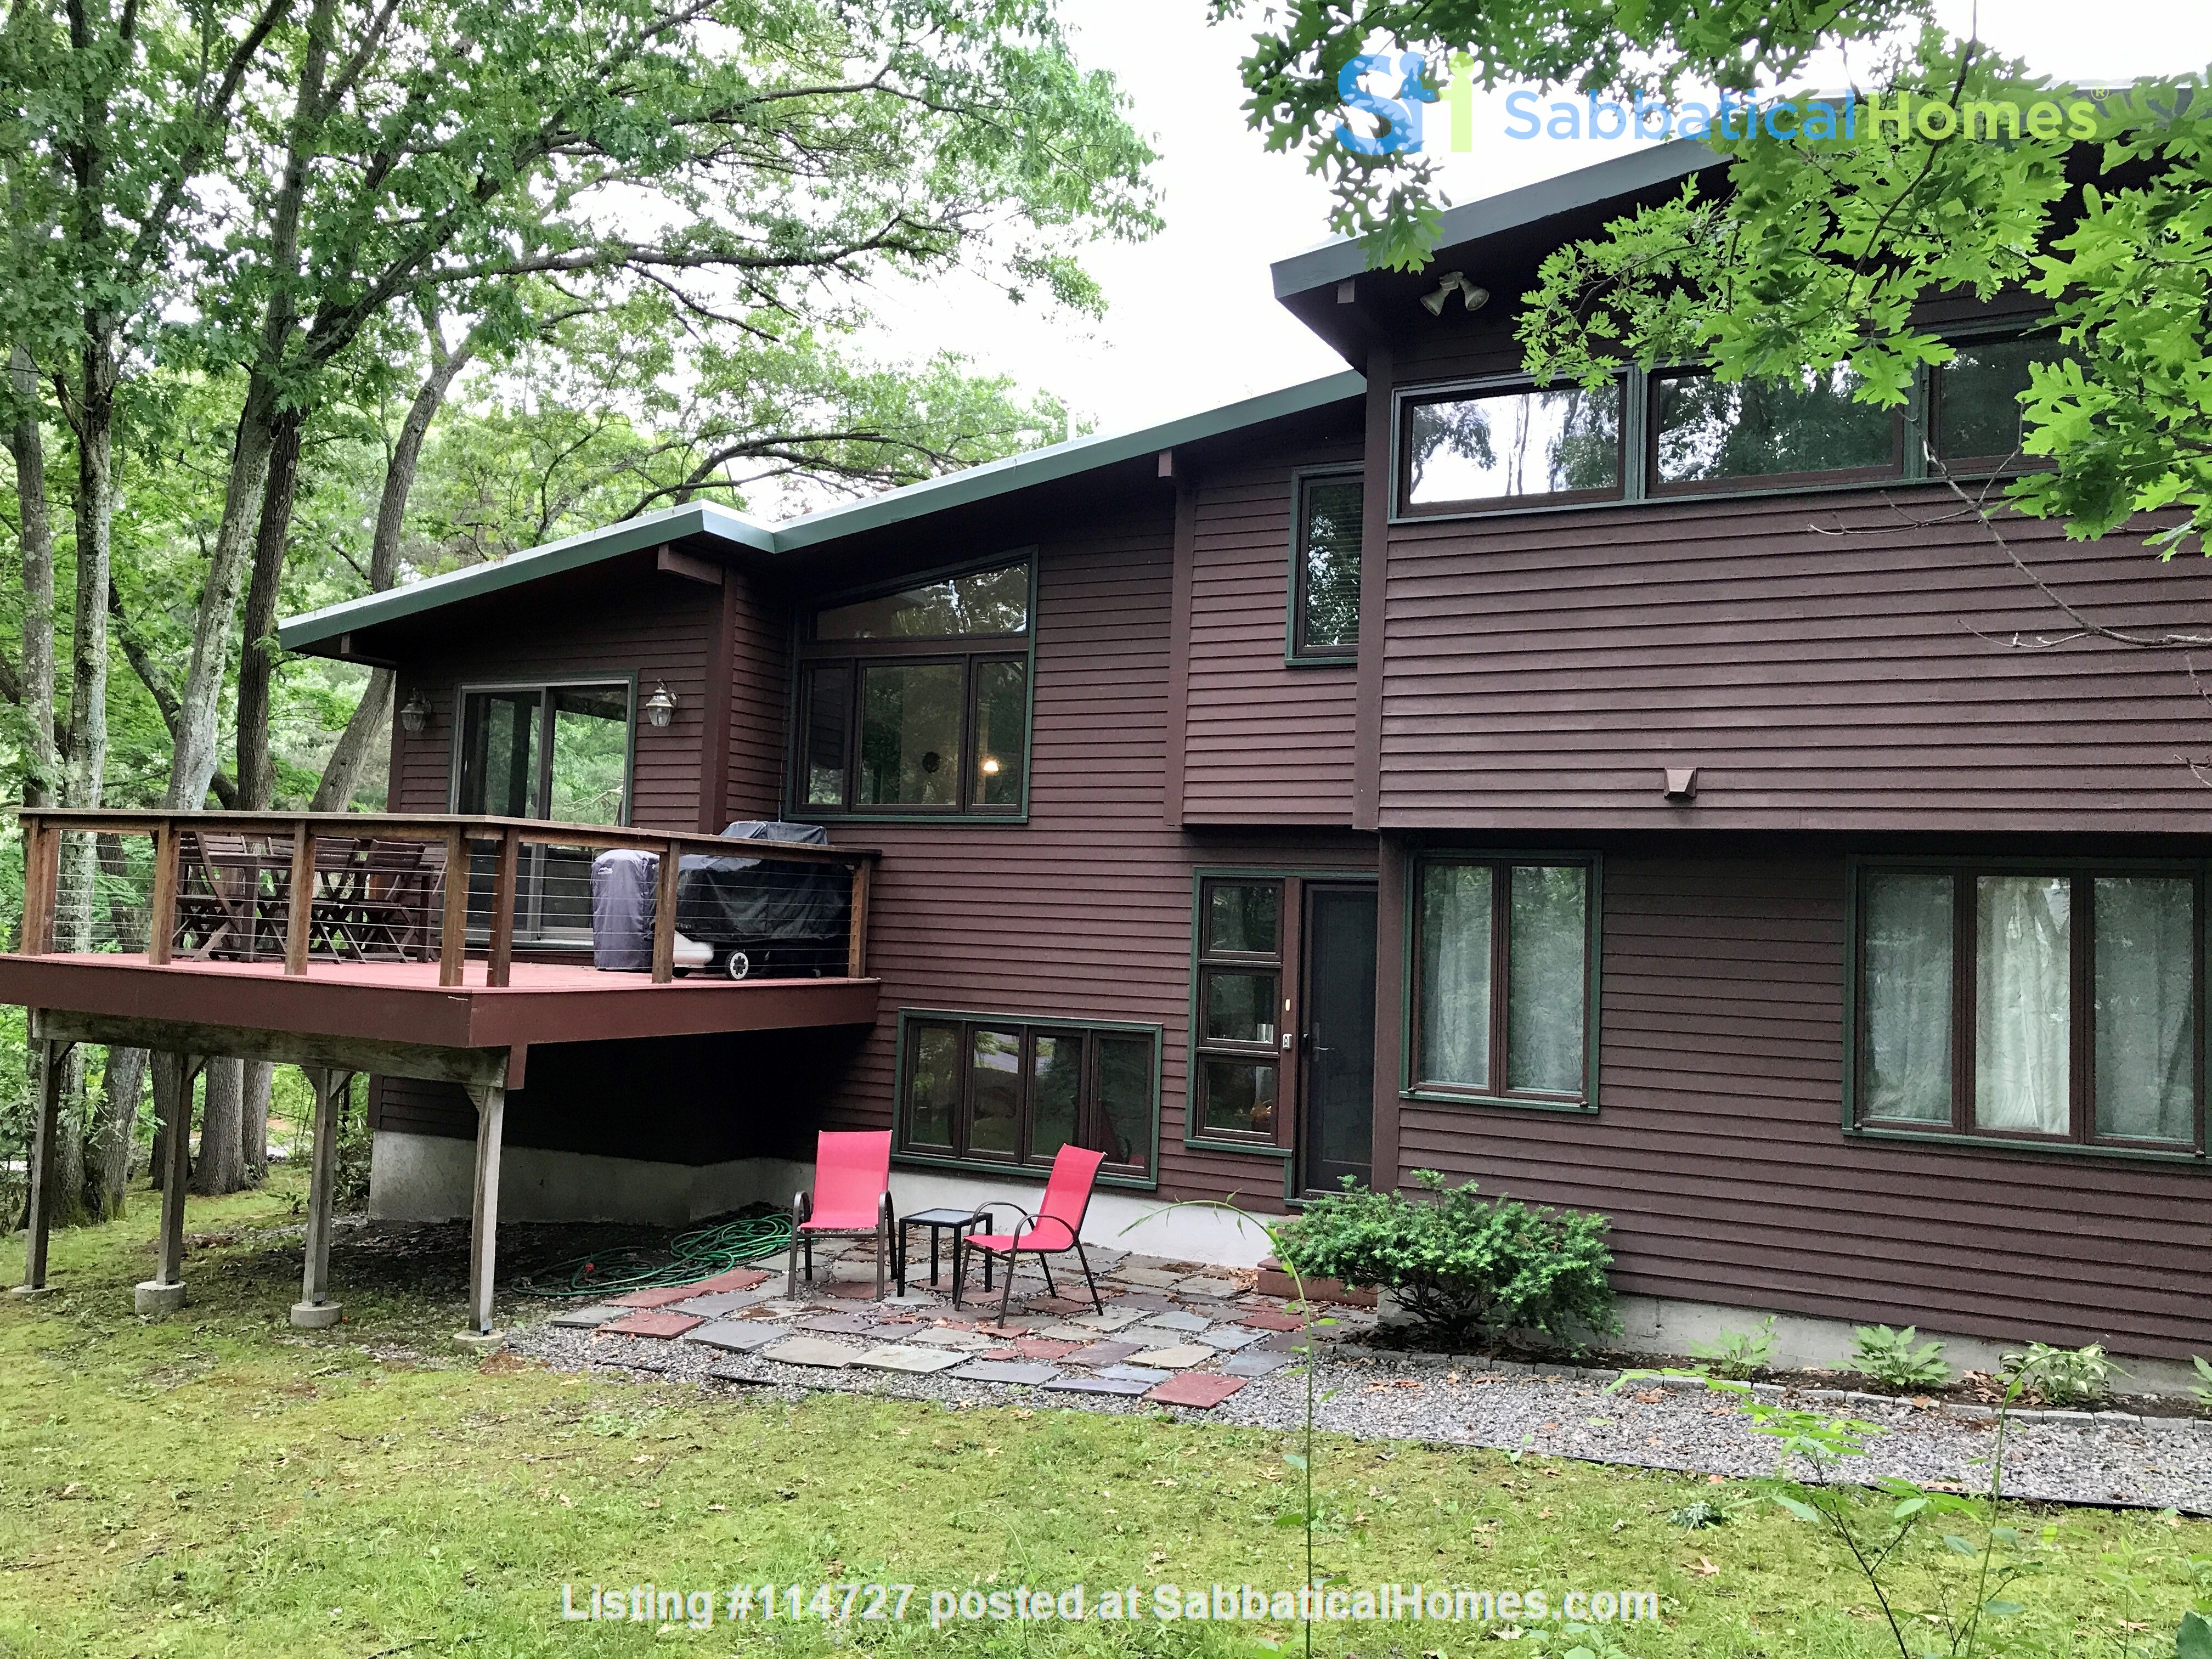 Newly furn &built 2 BR 1025 sq ft apt w/utlts in lux home in Winchester, Ma Home Rental in Winchester, Massachusetts, United States 8